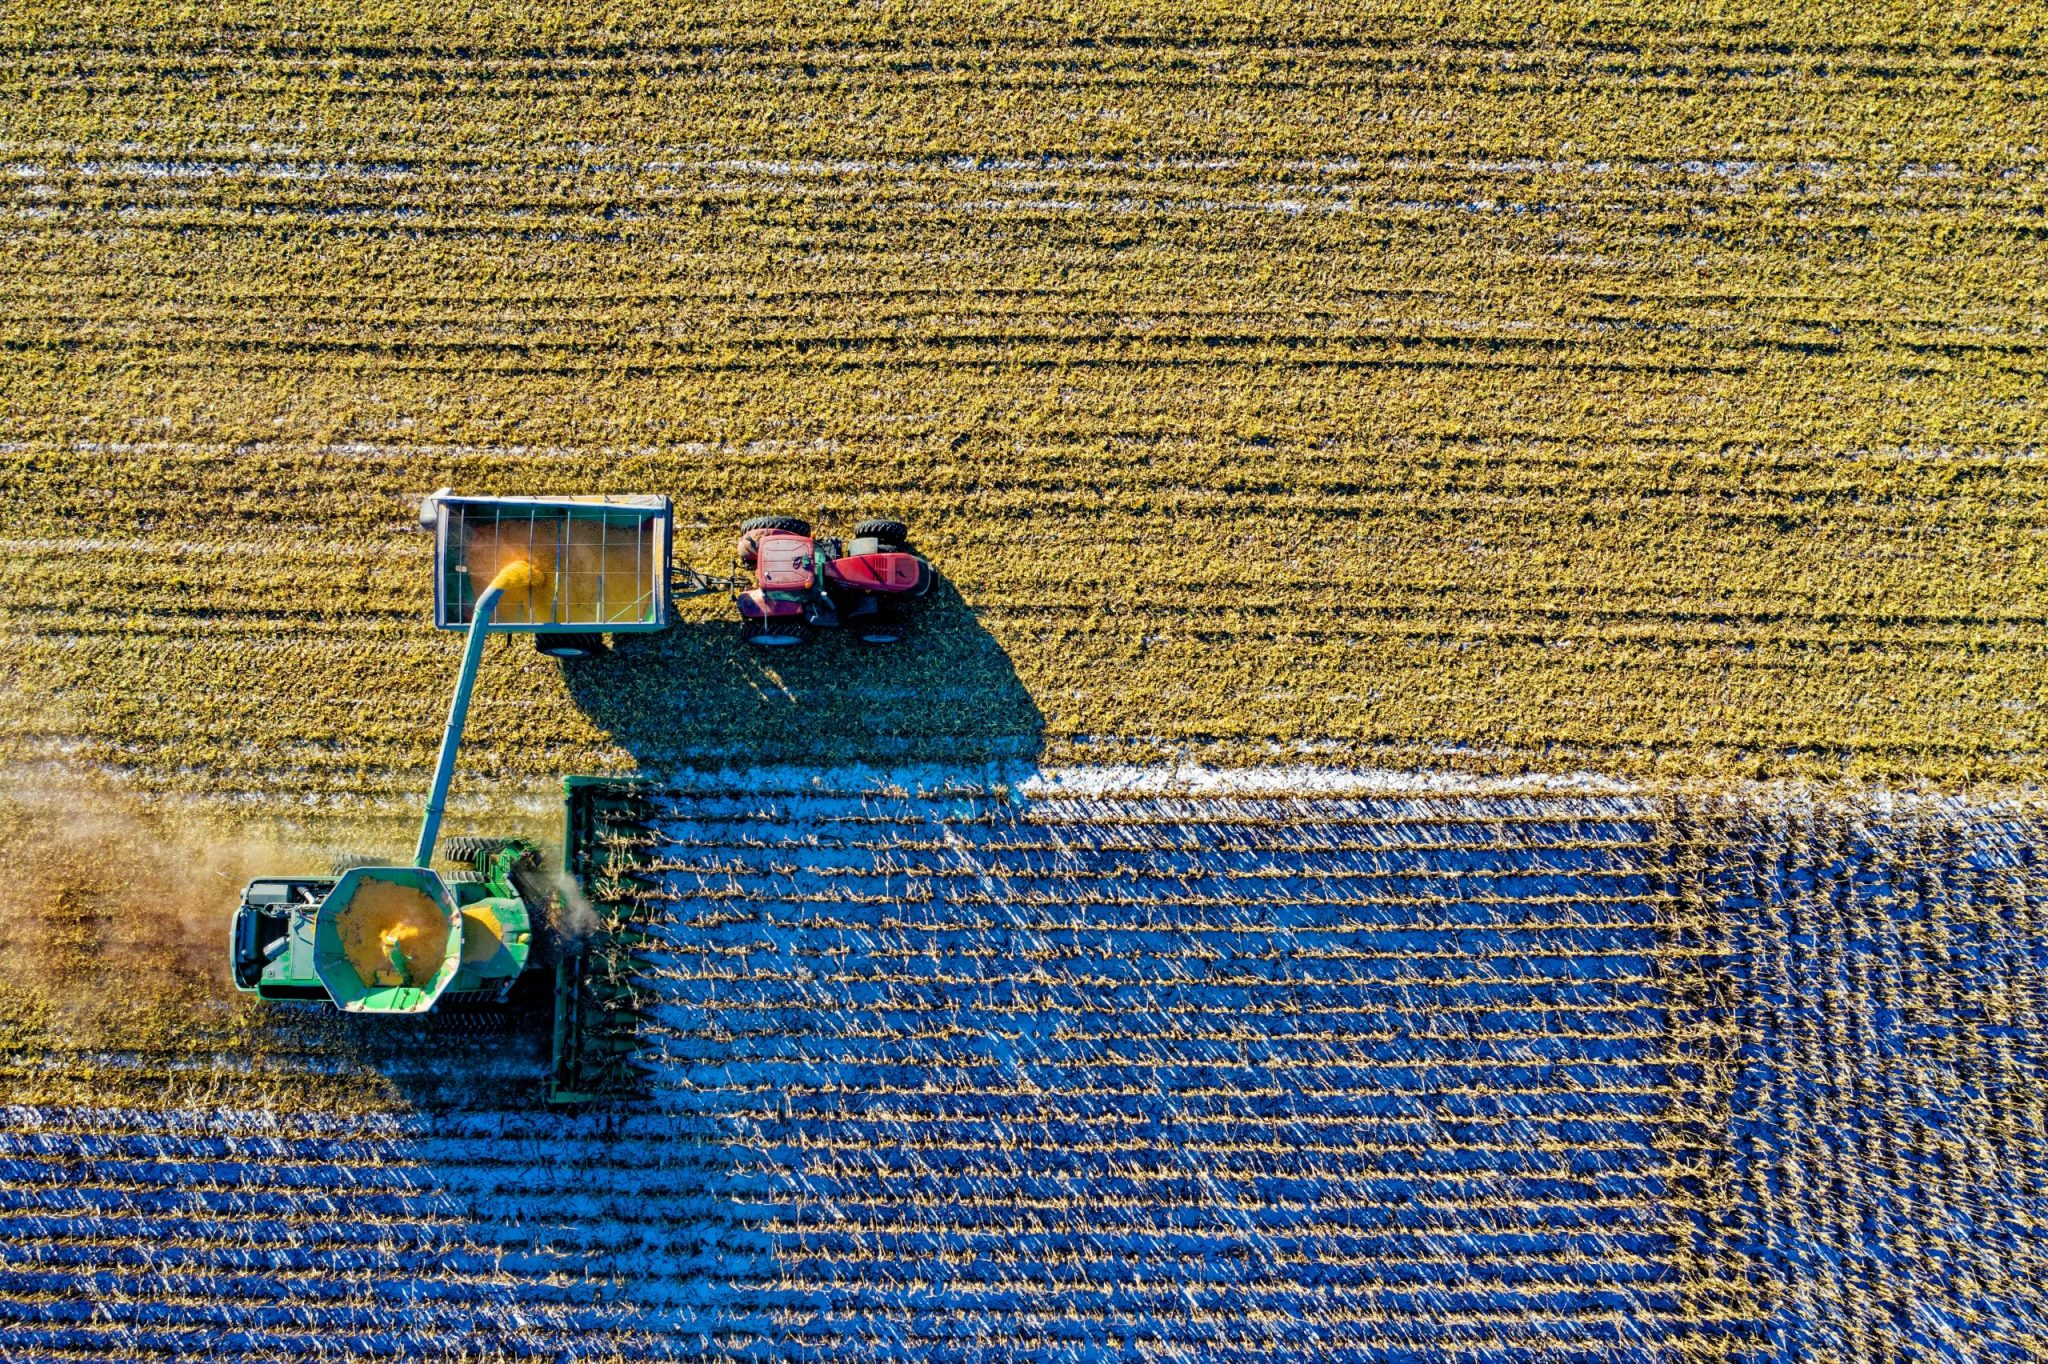 7 Lessons Your Business Should Learn From Farming